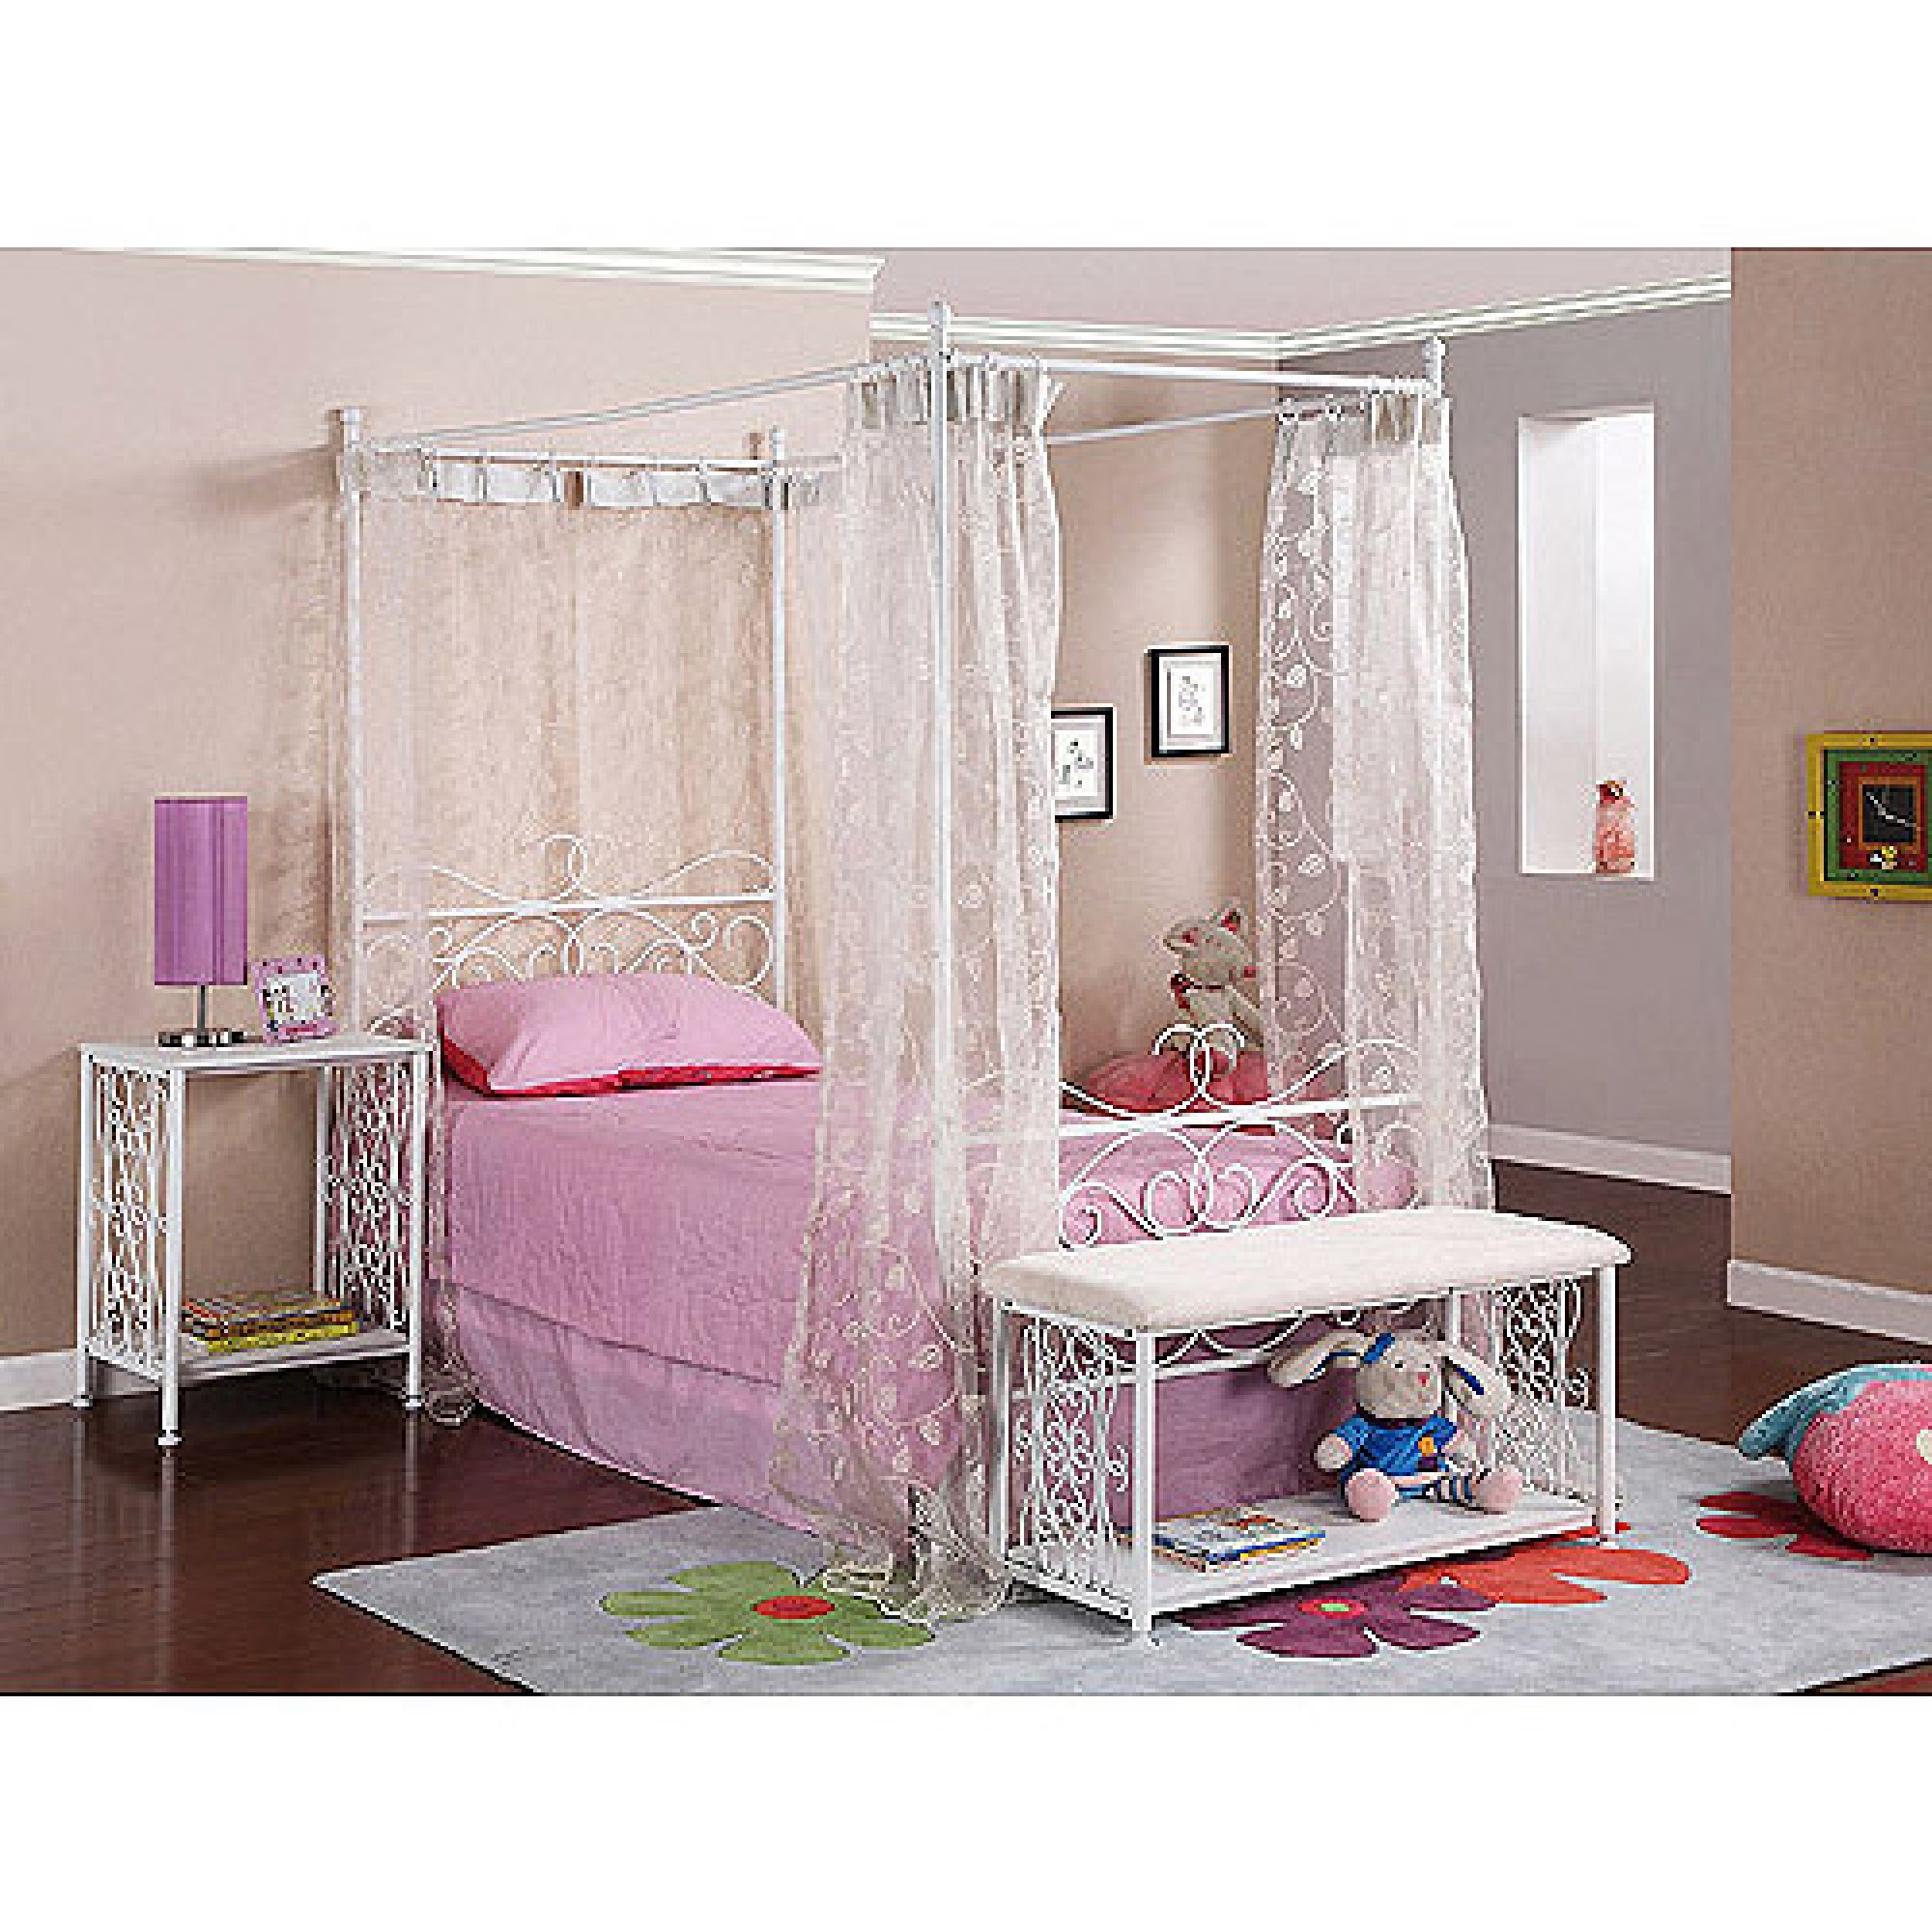 Cheap Princess Bed Canopy Diy Find Princess Bed Canopy Diy Deals On Line At Alibaba Com